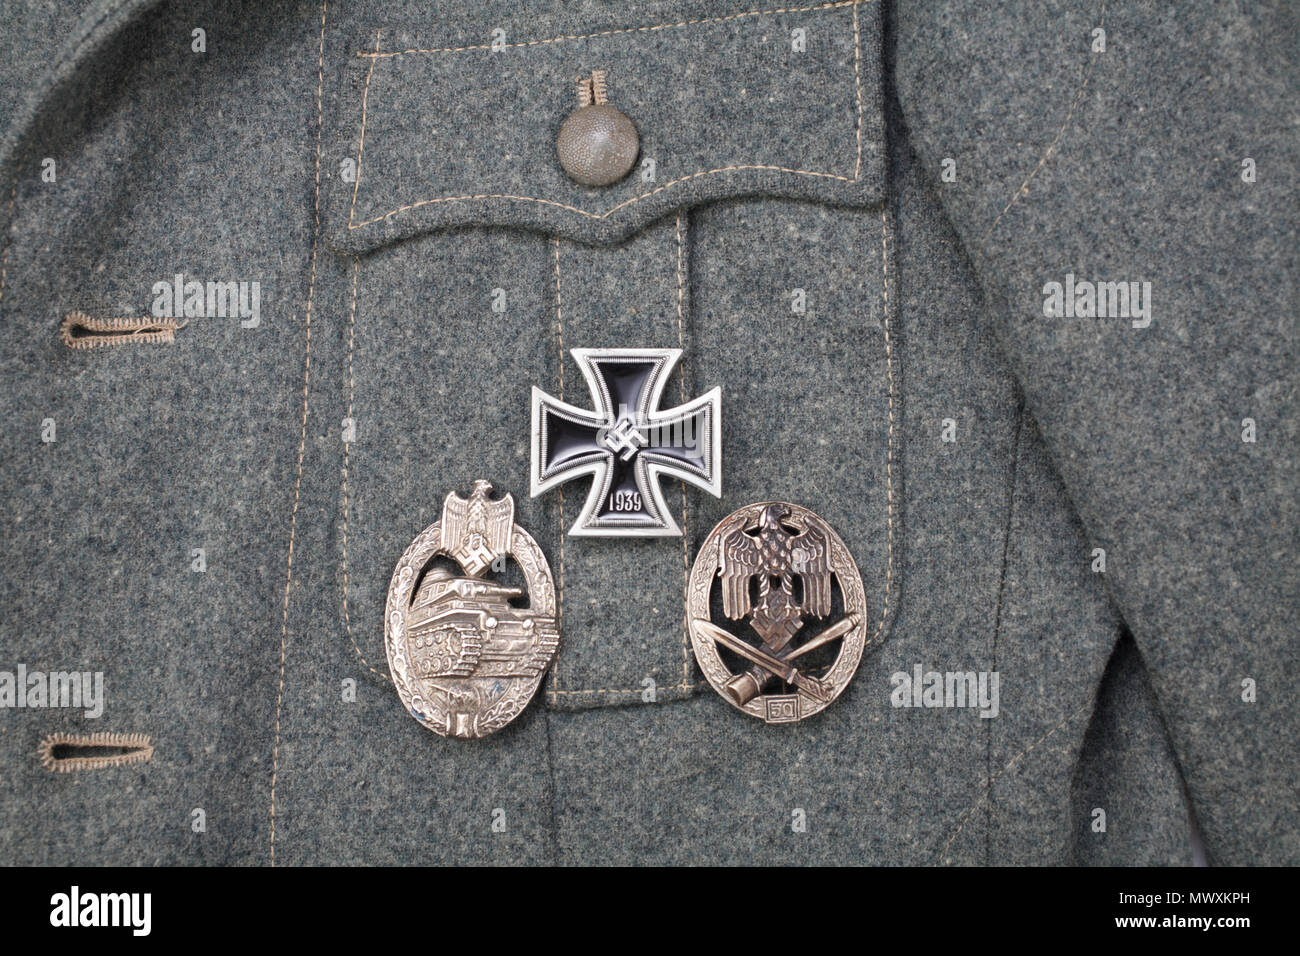 Uniform Iron Cross Medal Stock Photos & Uniform Iron Cross